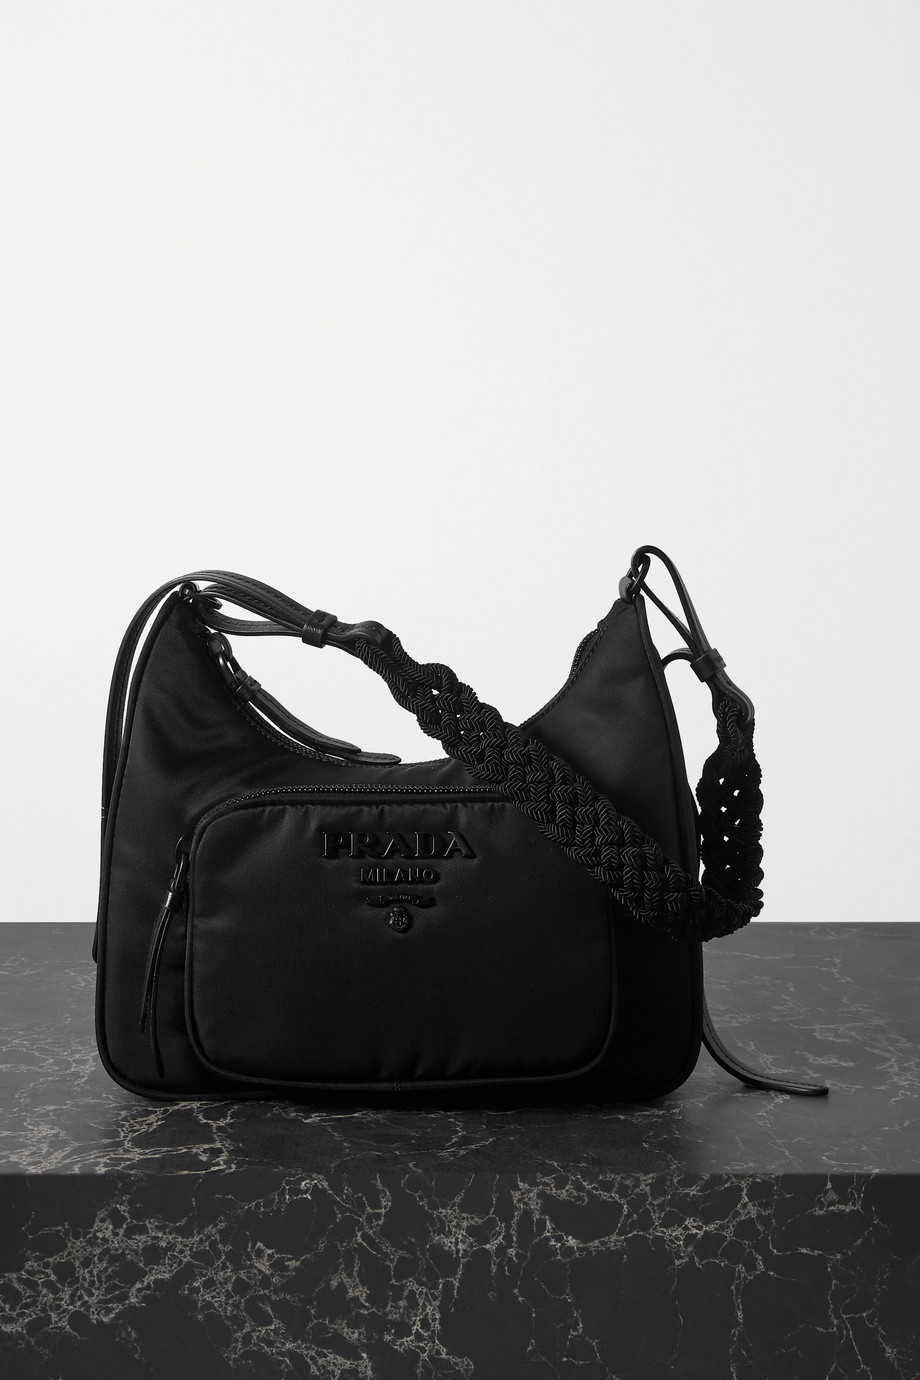 Prada Tessuto macramé-trimmed nylon shoulder bag